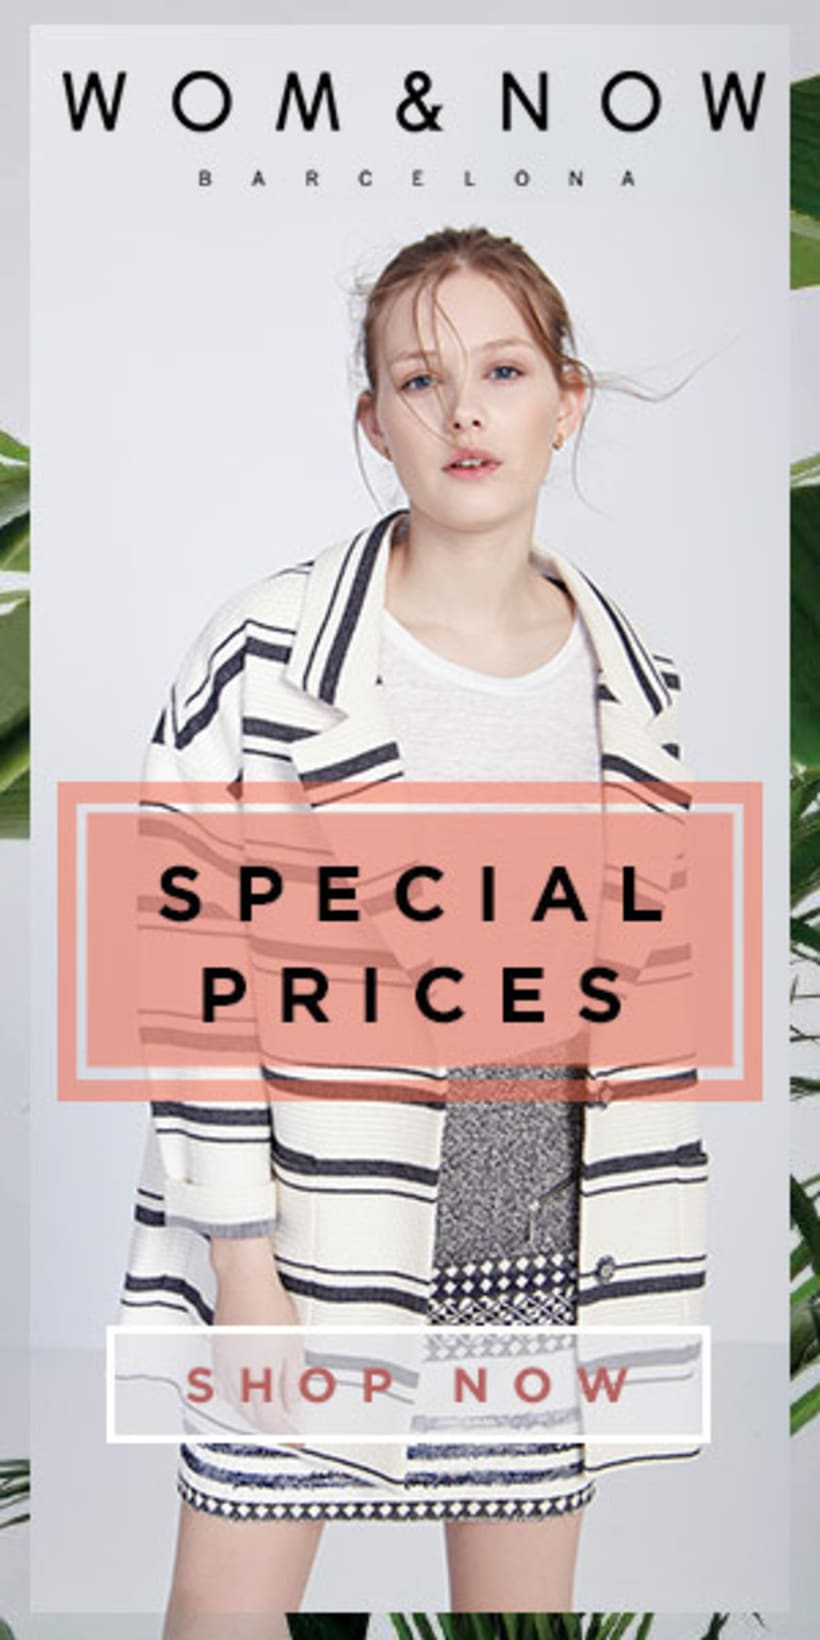 Special Prices banners for Wom&Now 1